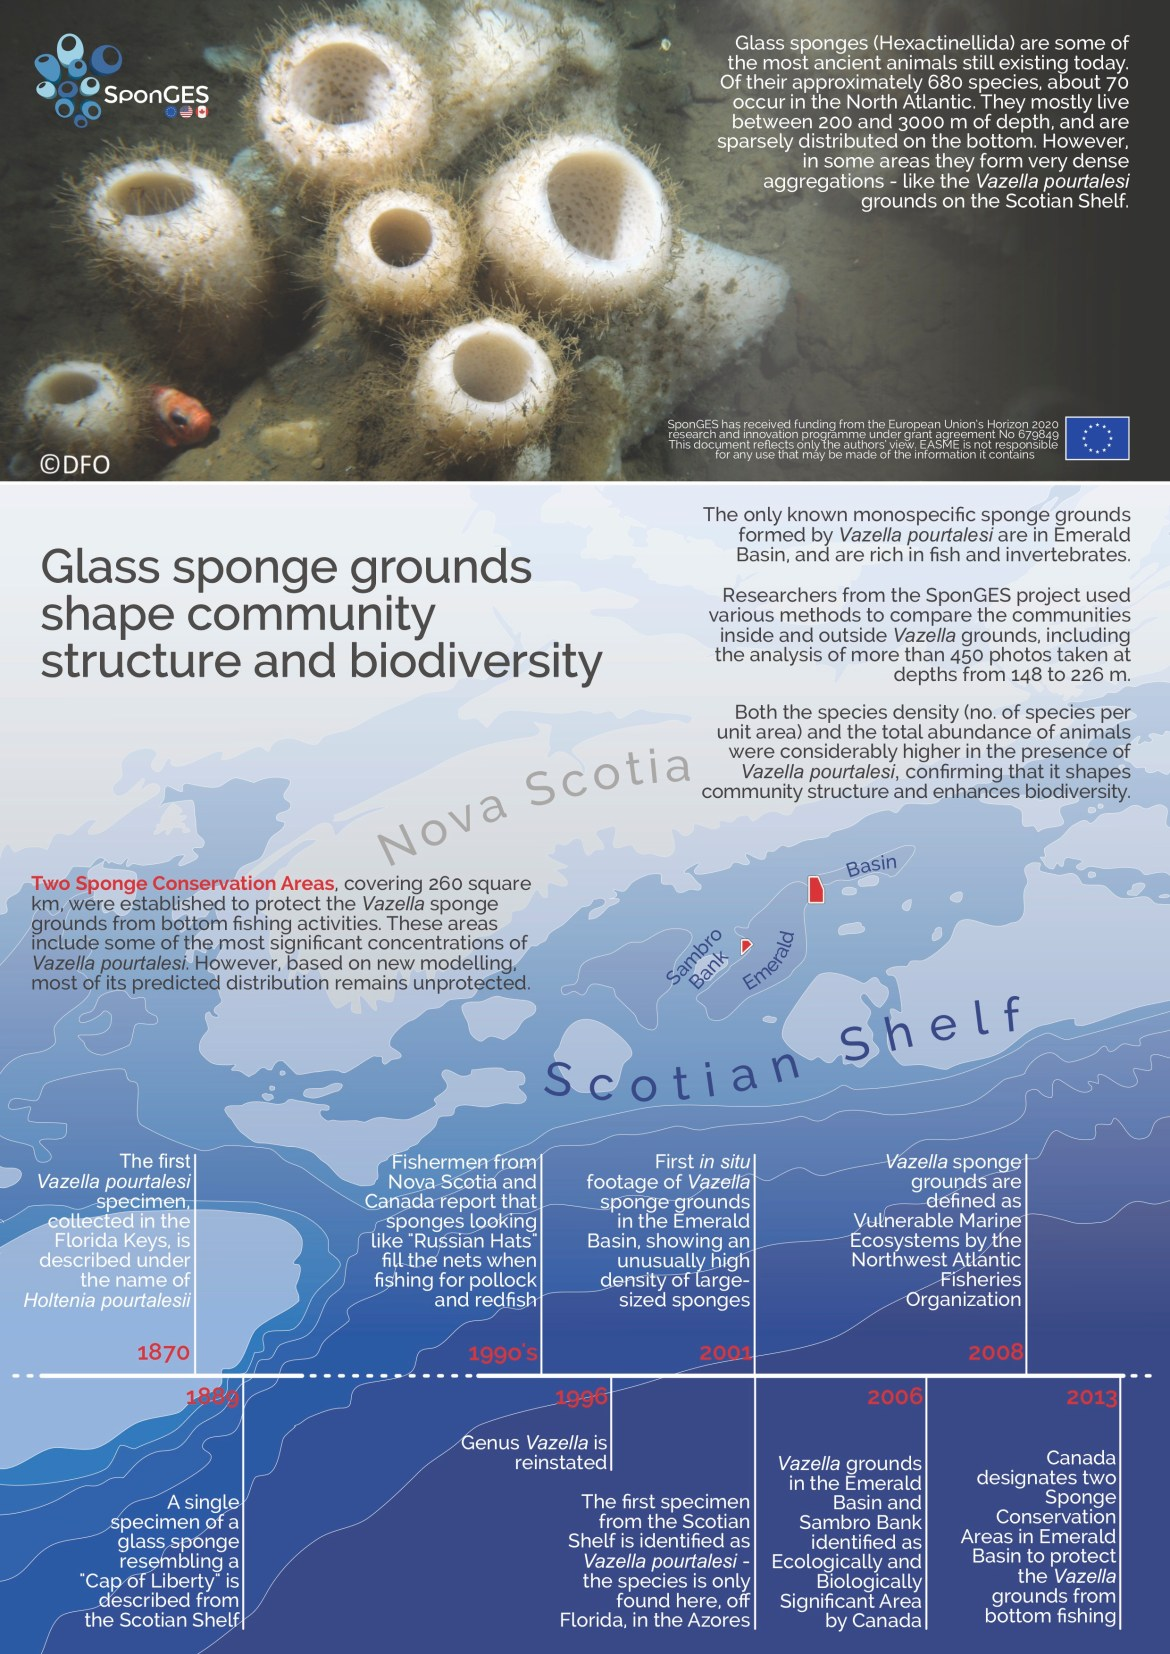 Why sponge grounds matter, and a little history of Vazella grounds